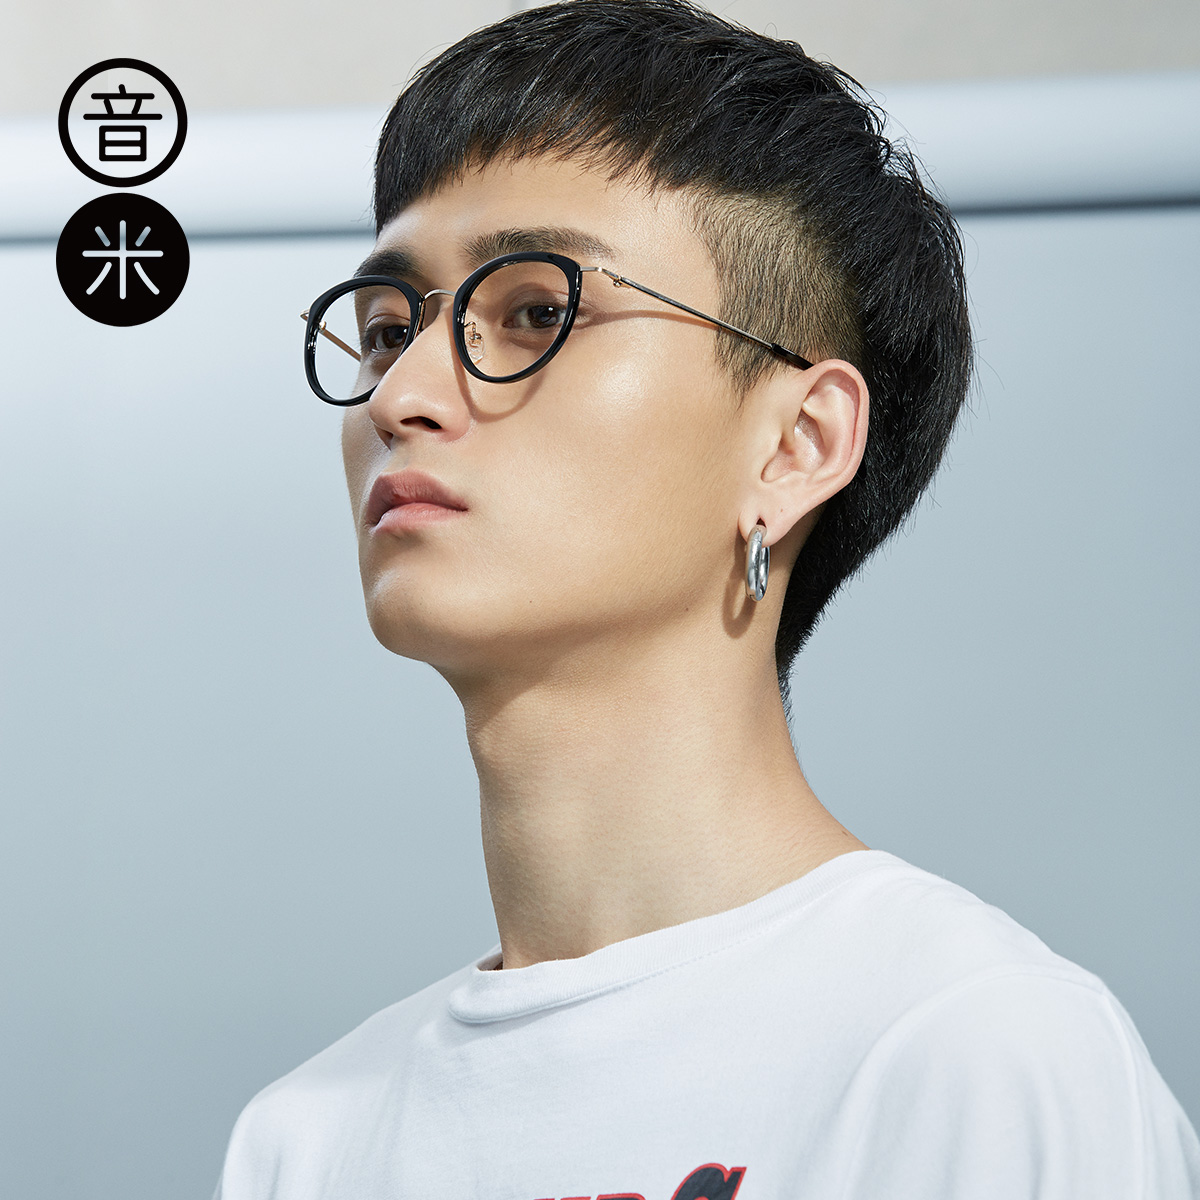 Mirror Frame Glasses Sound Meter Round Frame Glasses Retro Flat Mirror Glasses Frame Female Round Face With Glasses Myopia Glasses Female Simple Eye Frame